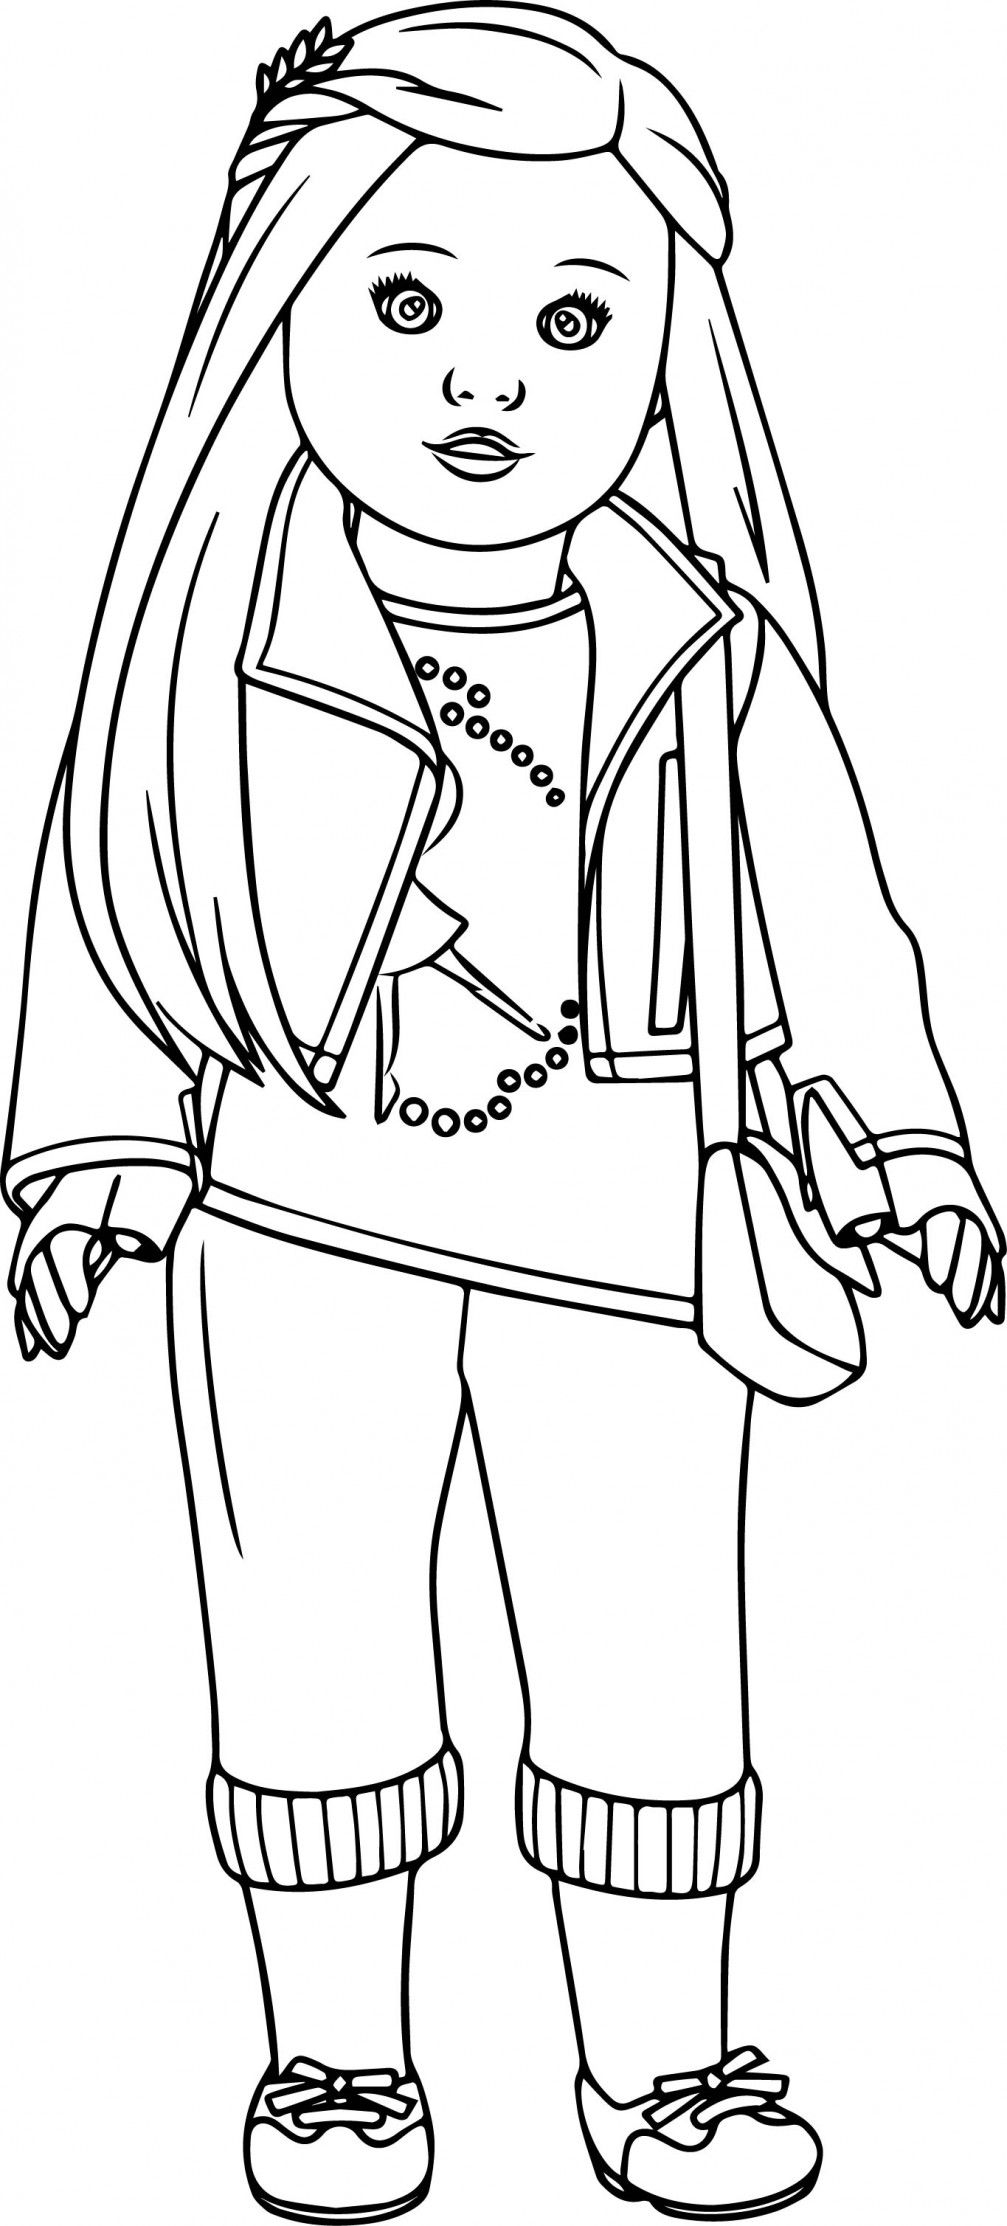 free girl coloring pages to print american girl coloring pages best coloring pages for kids free girl pages to print coloring